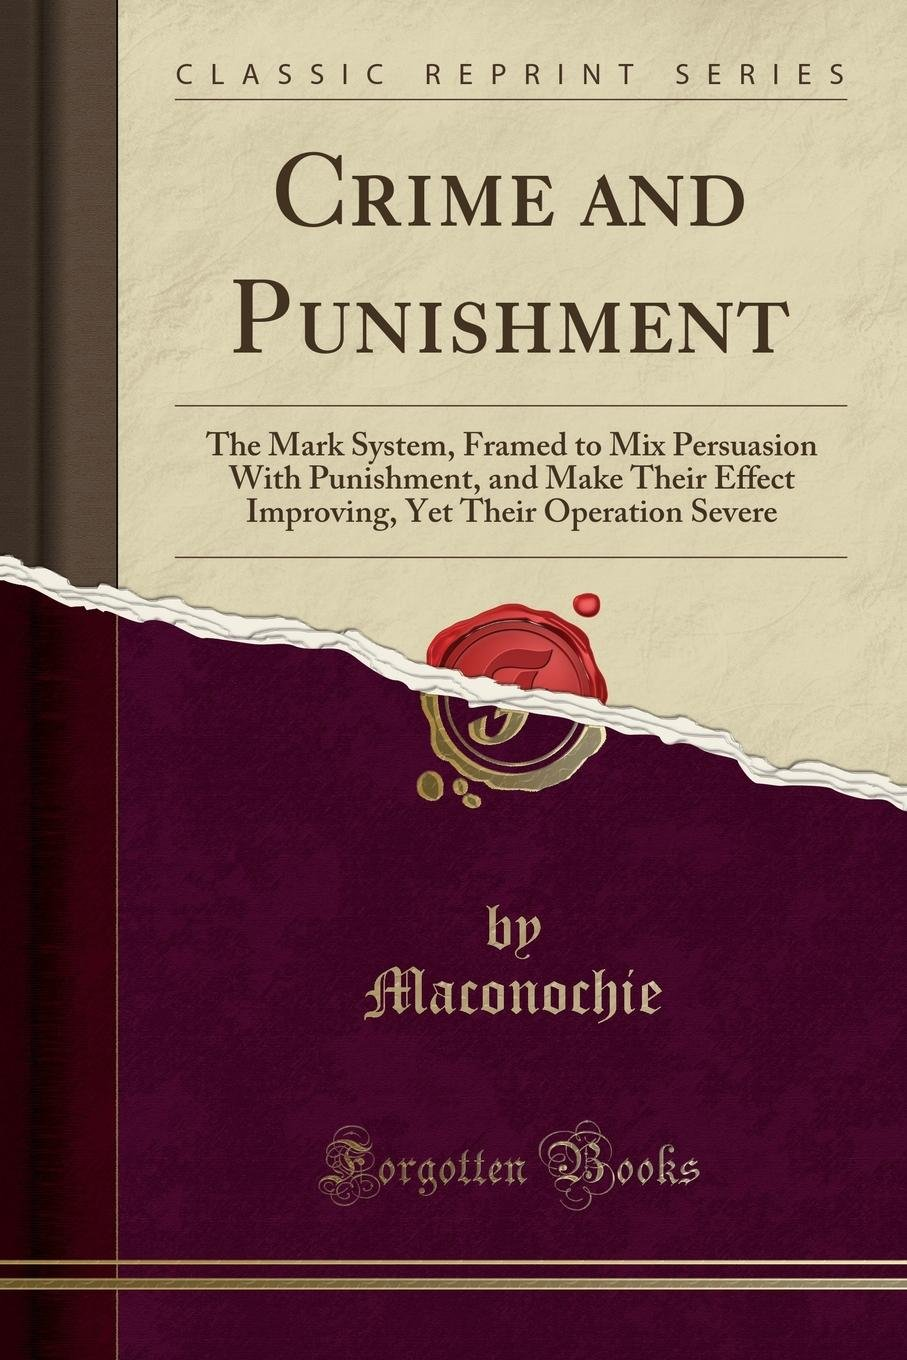 Crime and Punishment: The Mark System, Framed to Mix Persuasion With Punishment, and Make Their Effect Improving, Yet Their Operation Severe (Classic Reprint) ebook